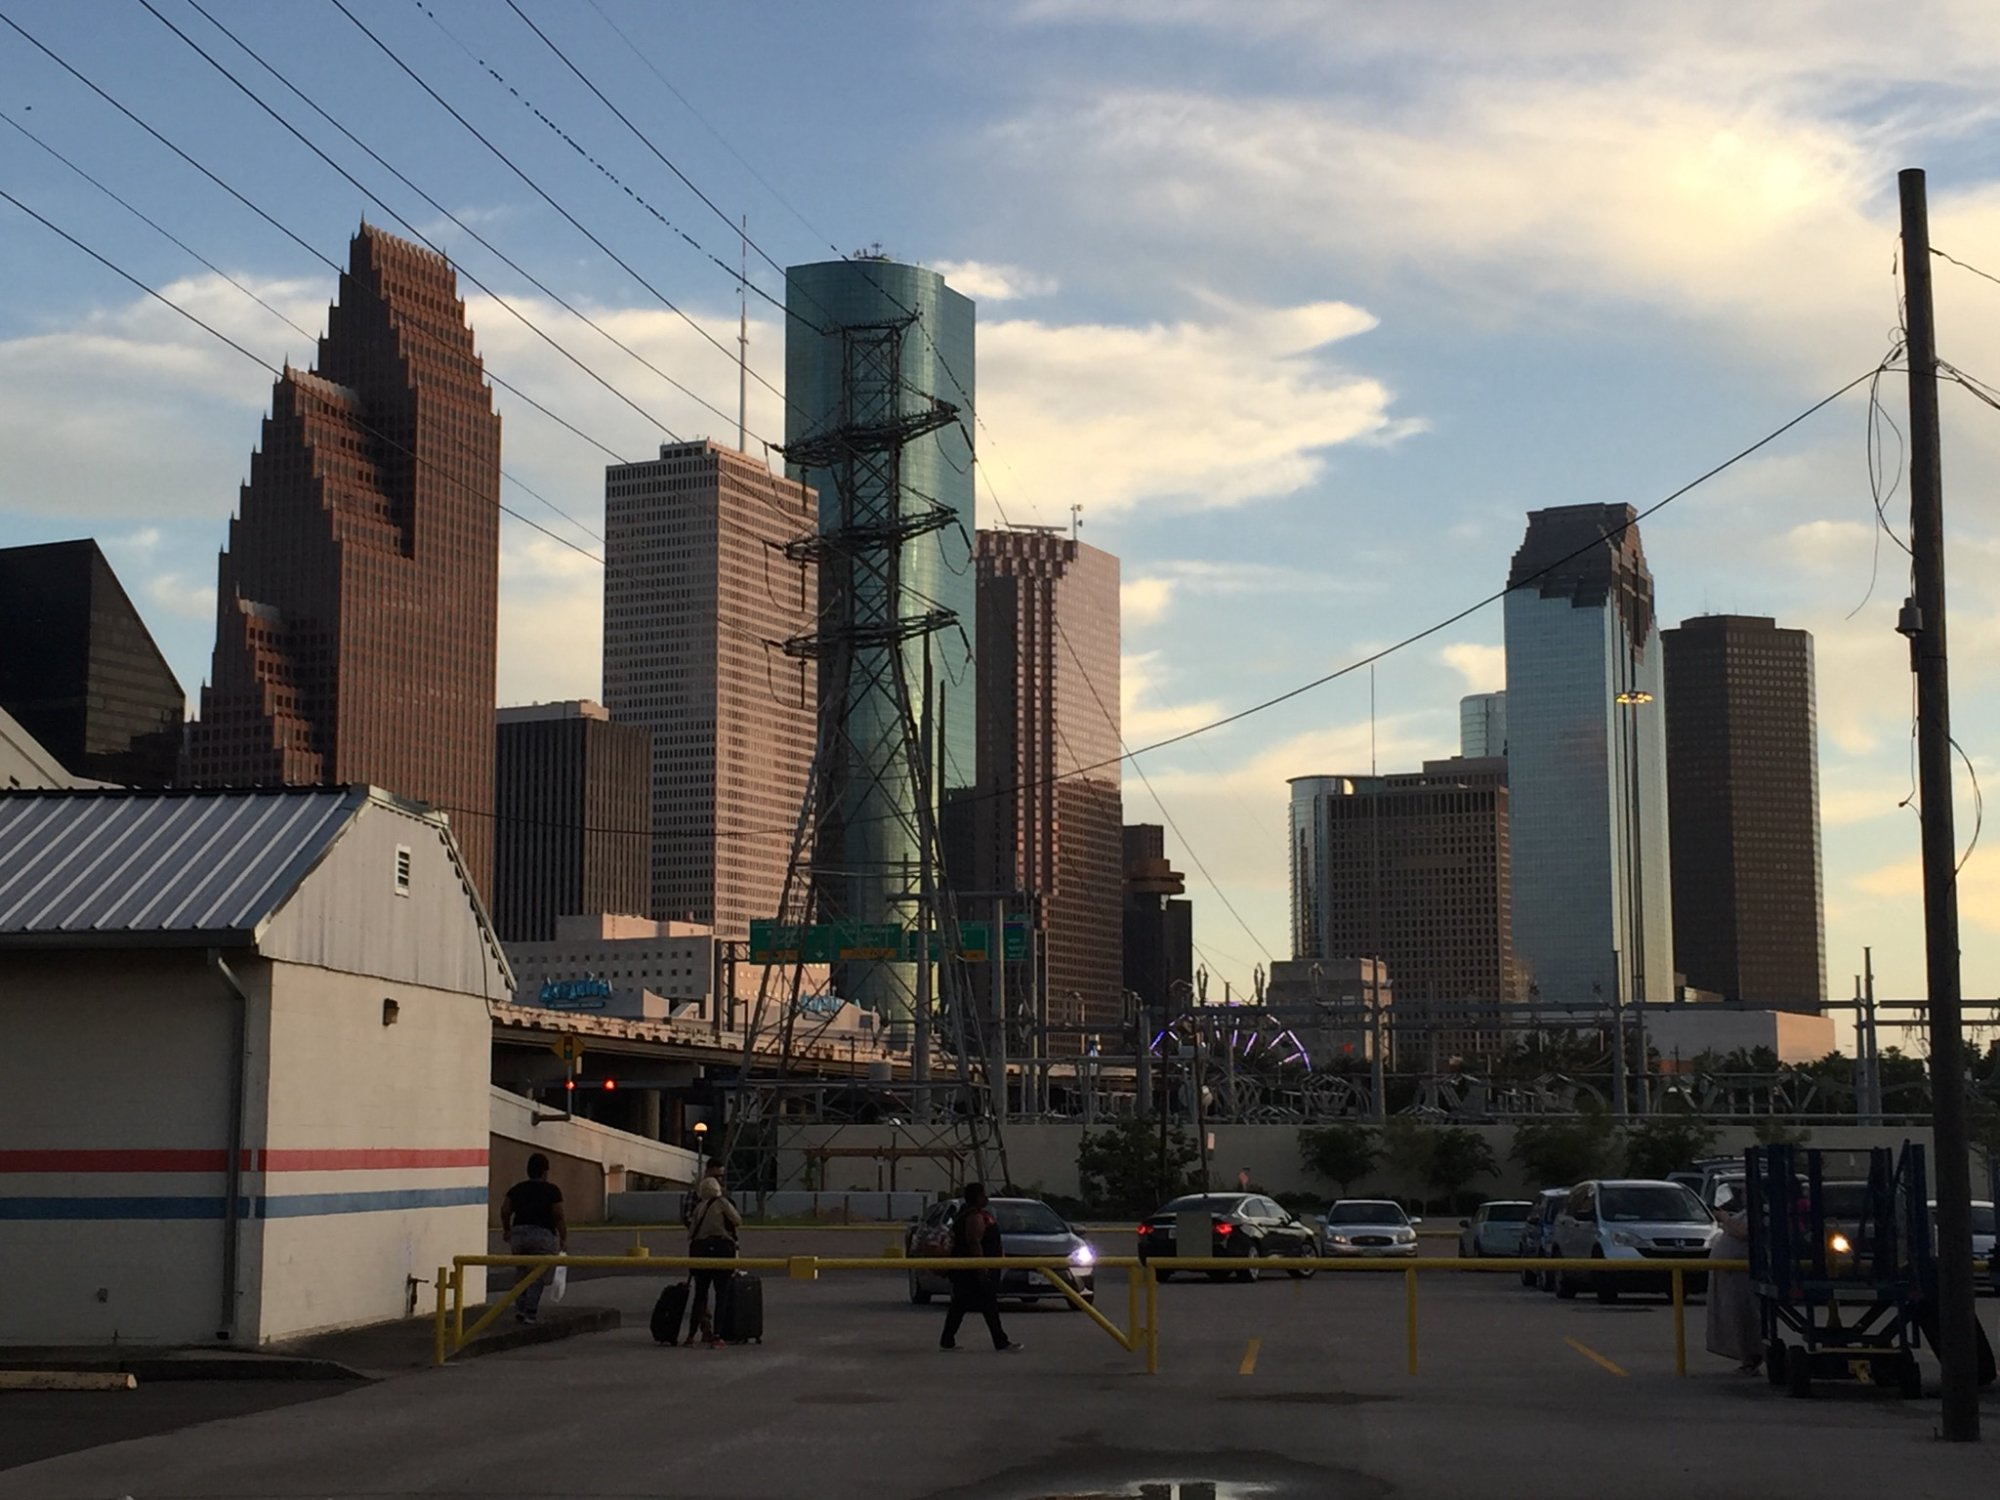 Downtown Houston as seen from the train station.